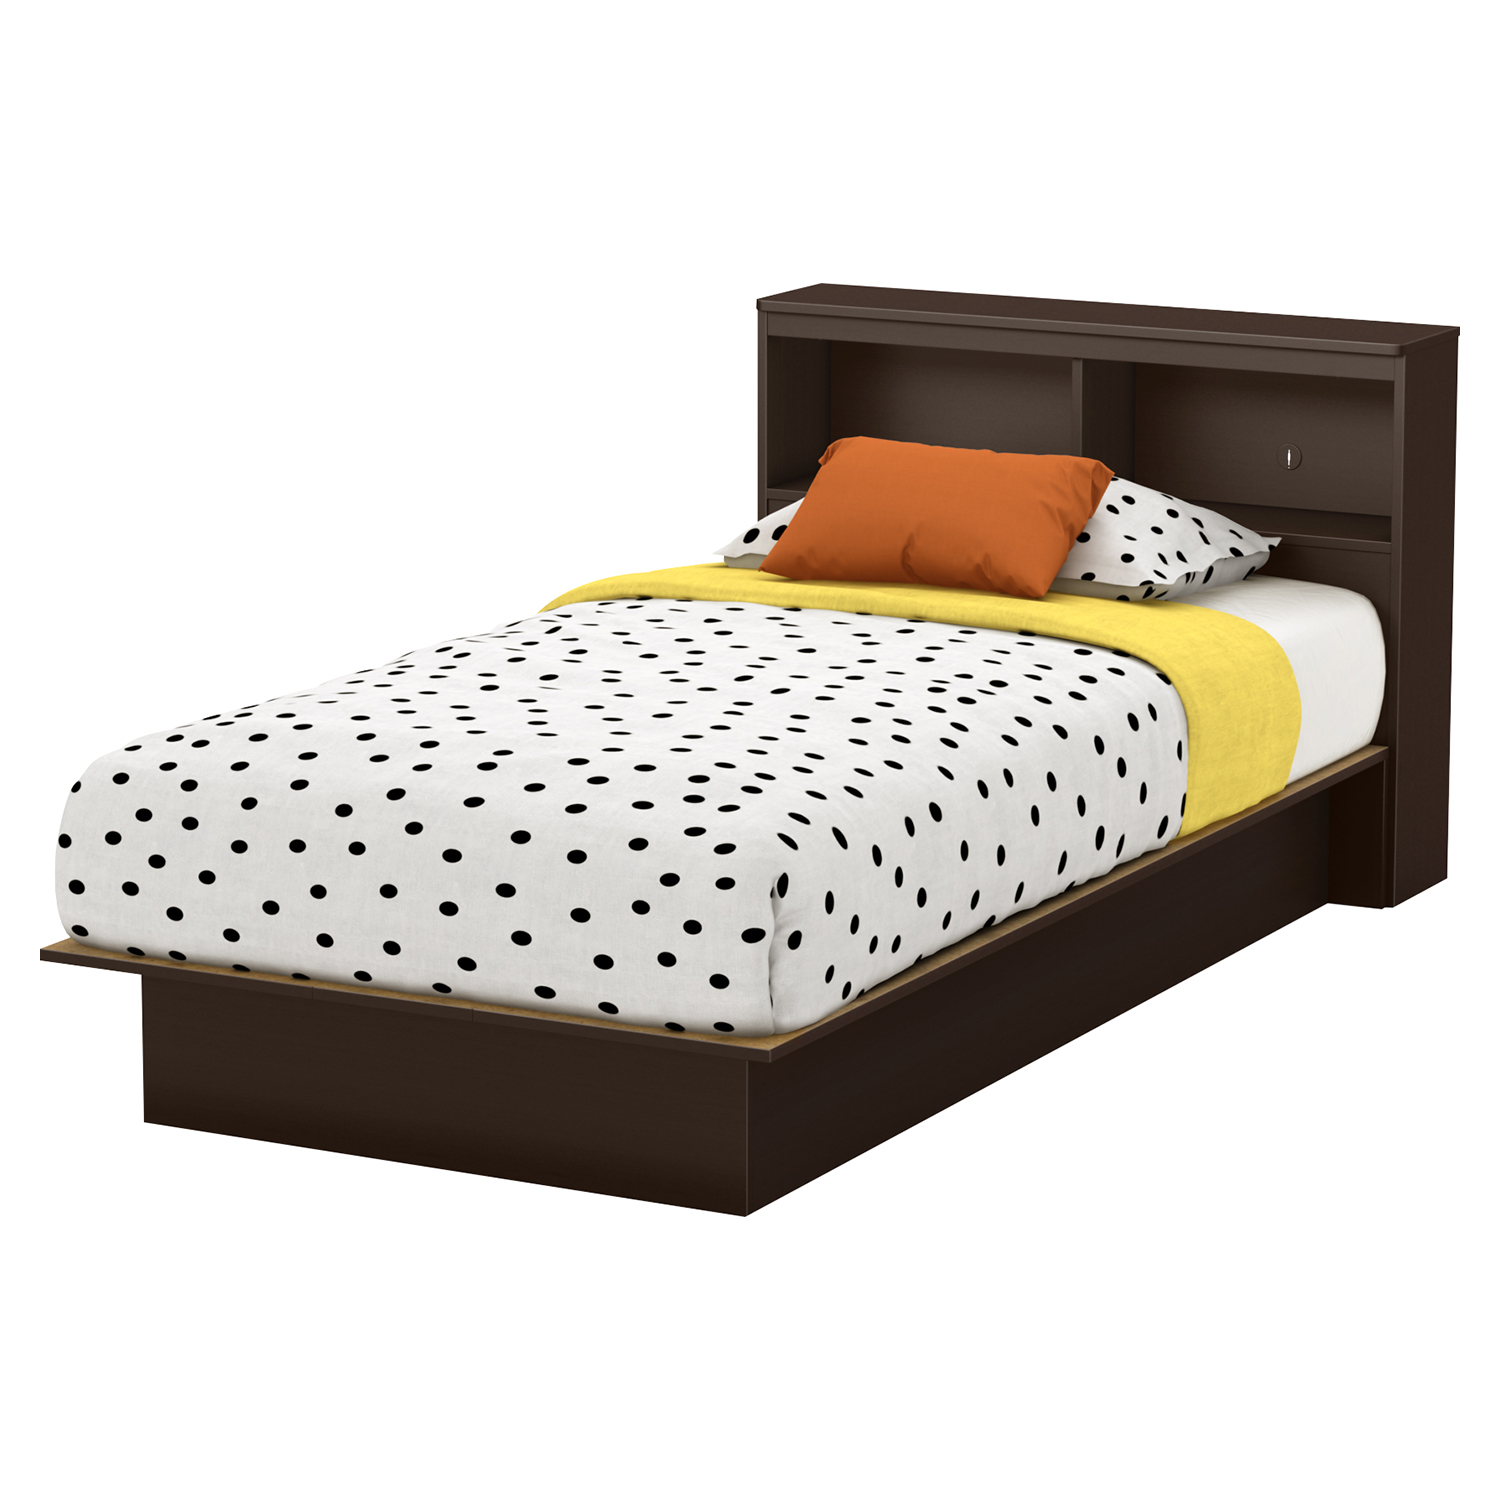 Libra Twin Platform Bed - Bookcase Headboard, Chocolate